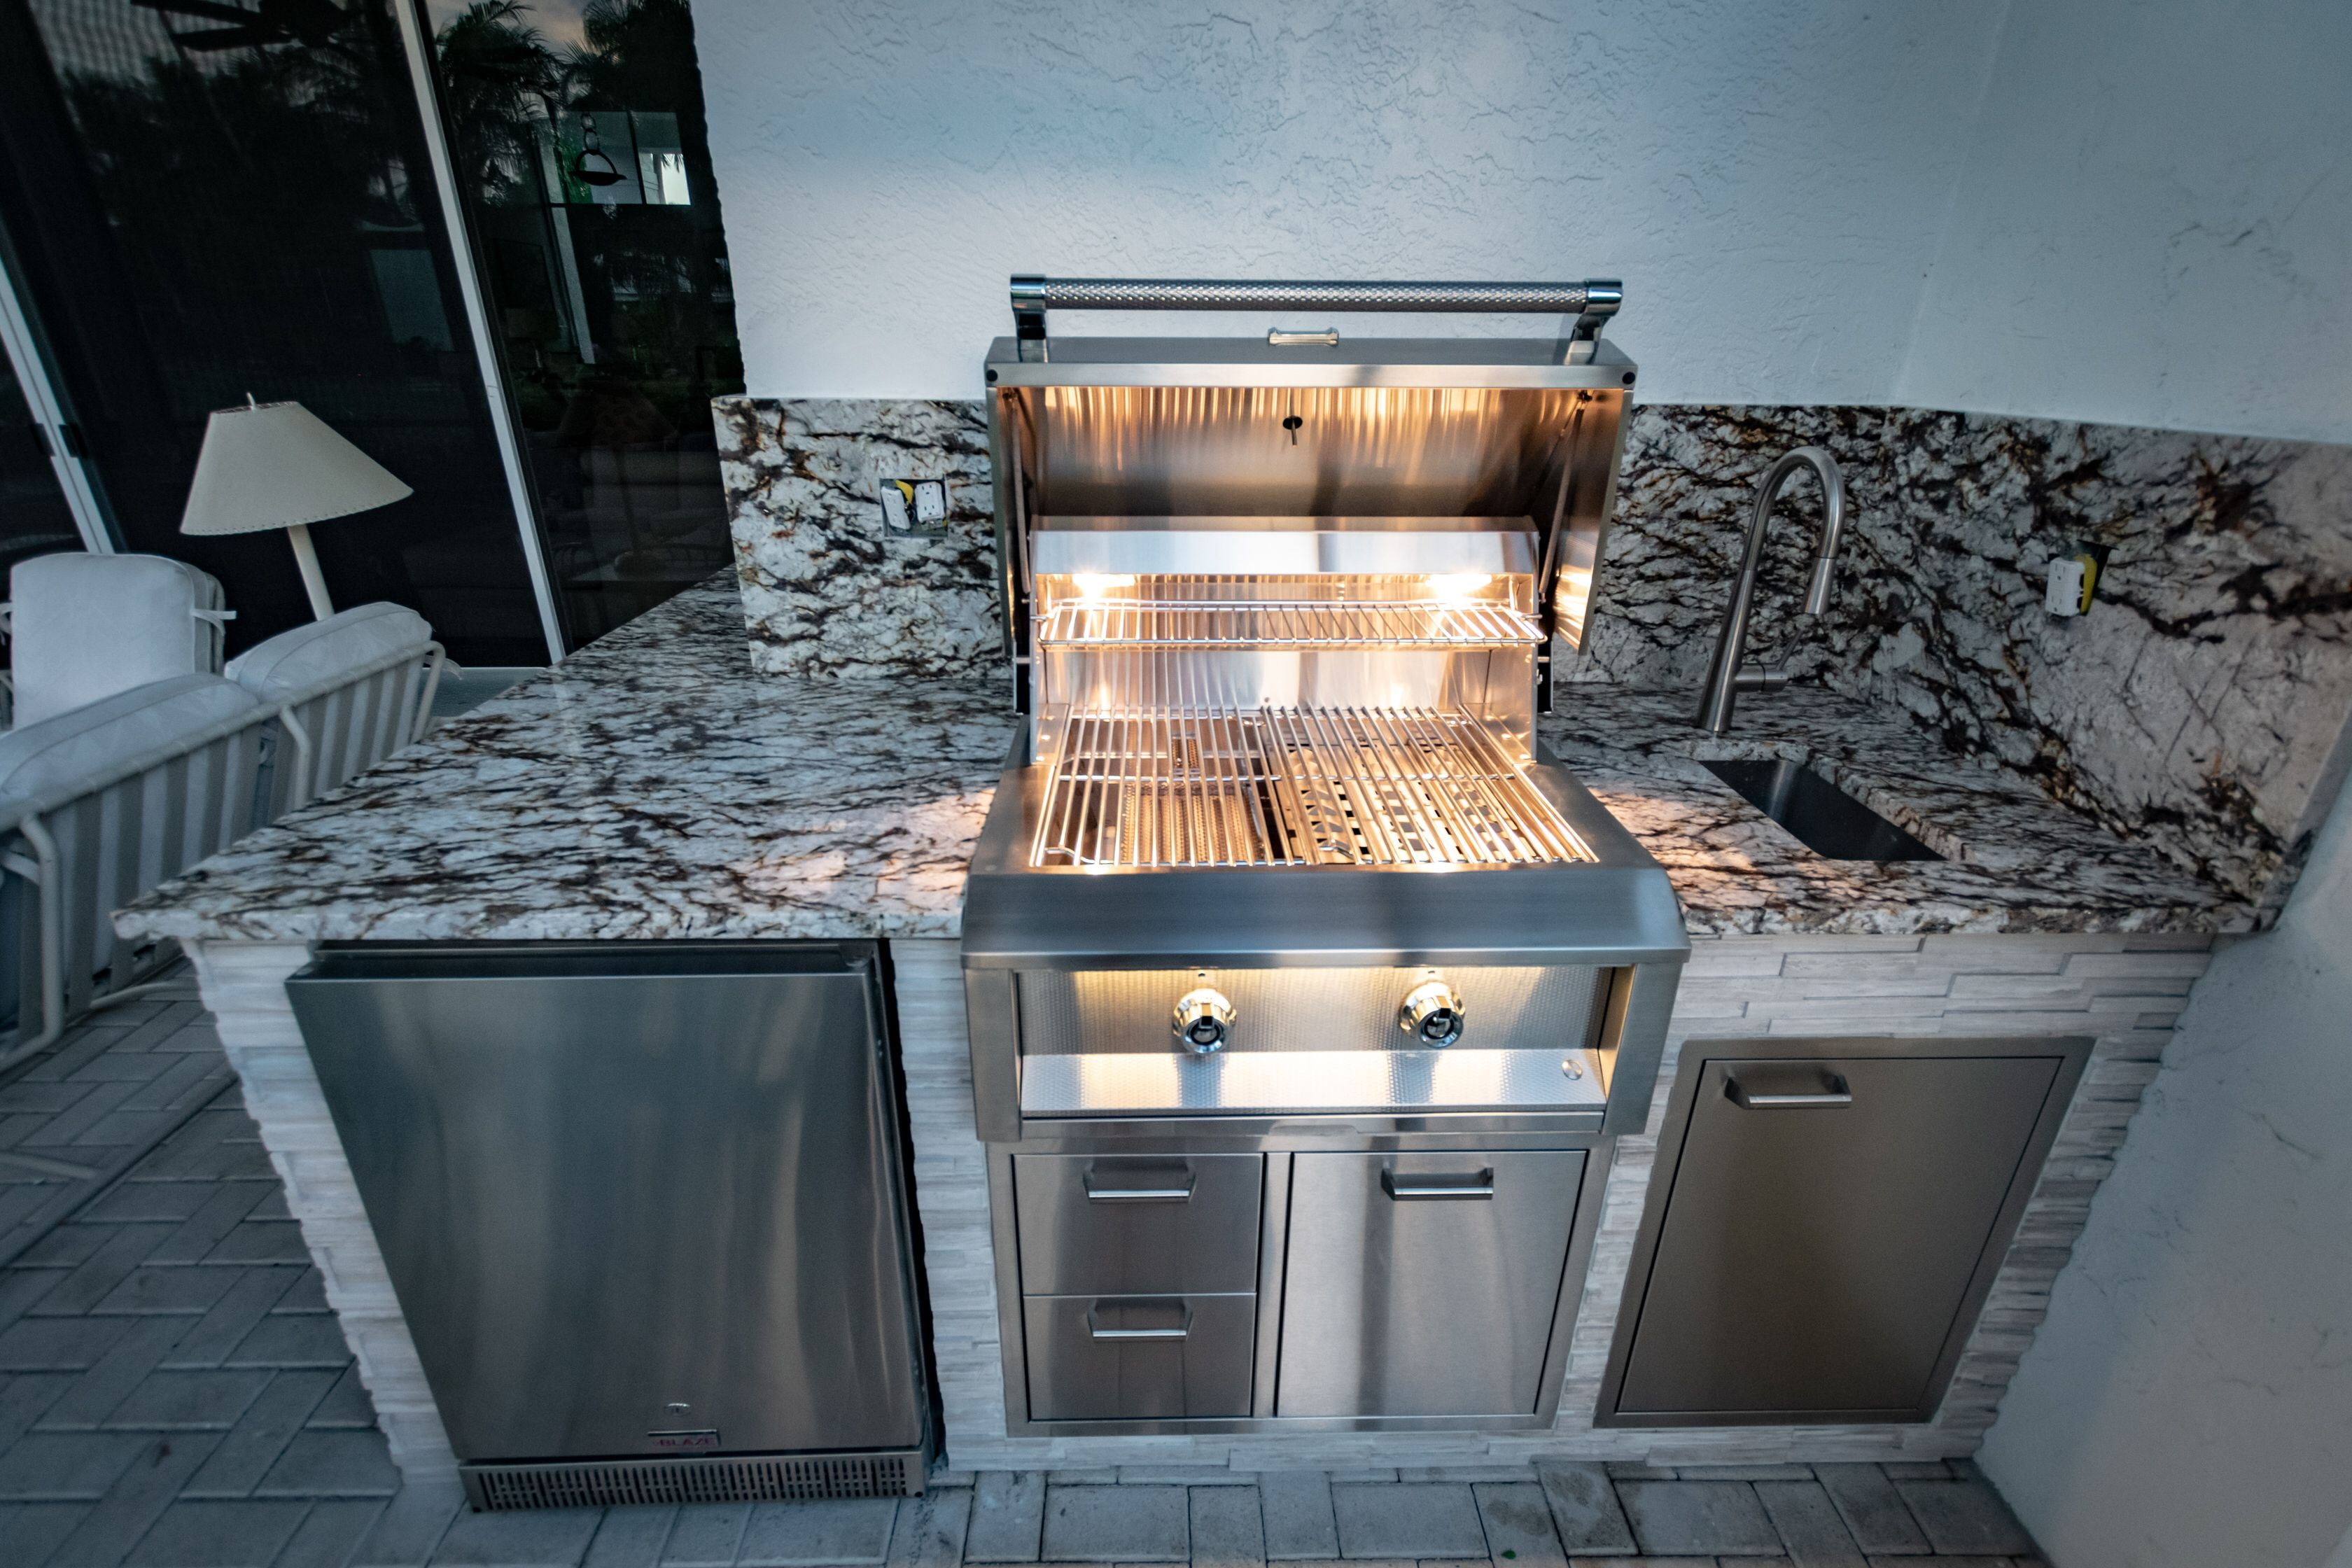 We Can Make A Tight Space Work Let Us Design Your Outdoor Kitchen Fischmanoutdoorkitchens Palmbeachgrillcleaner Outdoorentertainme Outdoor Kitchen